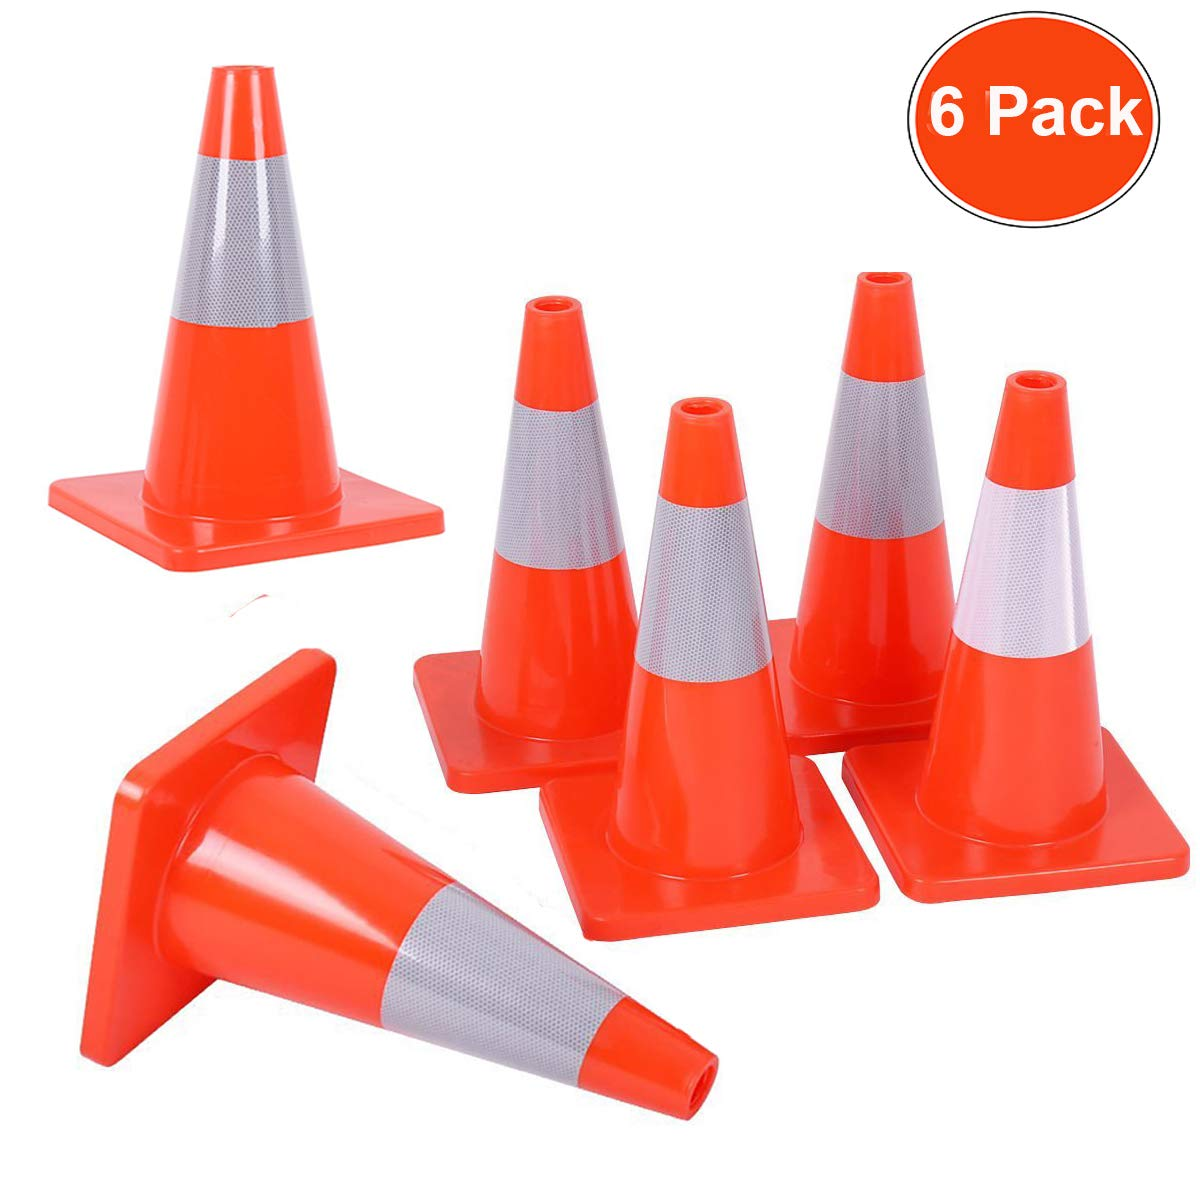 Reliancer 6PCS 18'' Traffic Cones PVC Safety Road Parking Cones Weighted Hazard Cones Construction Cones for Traffic Fluorescent Orange w/4'' Reflective Strips Collar